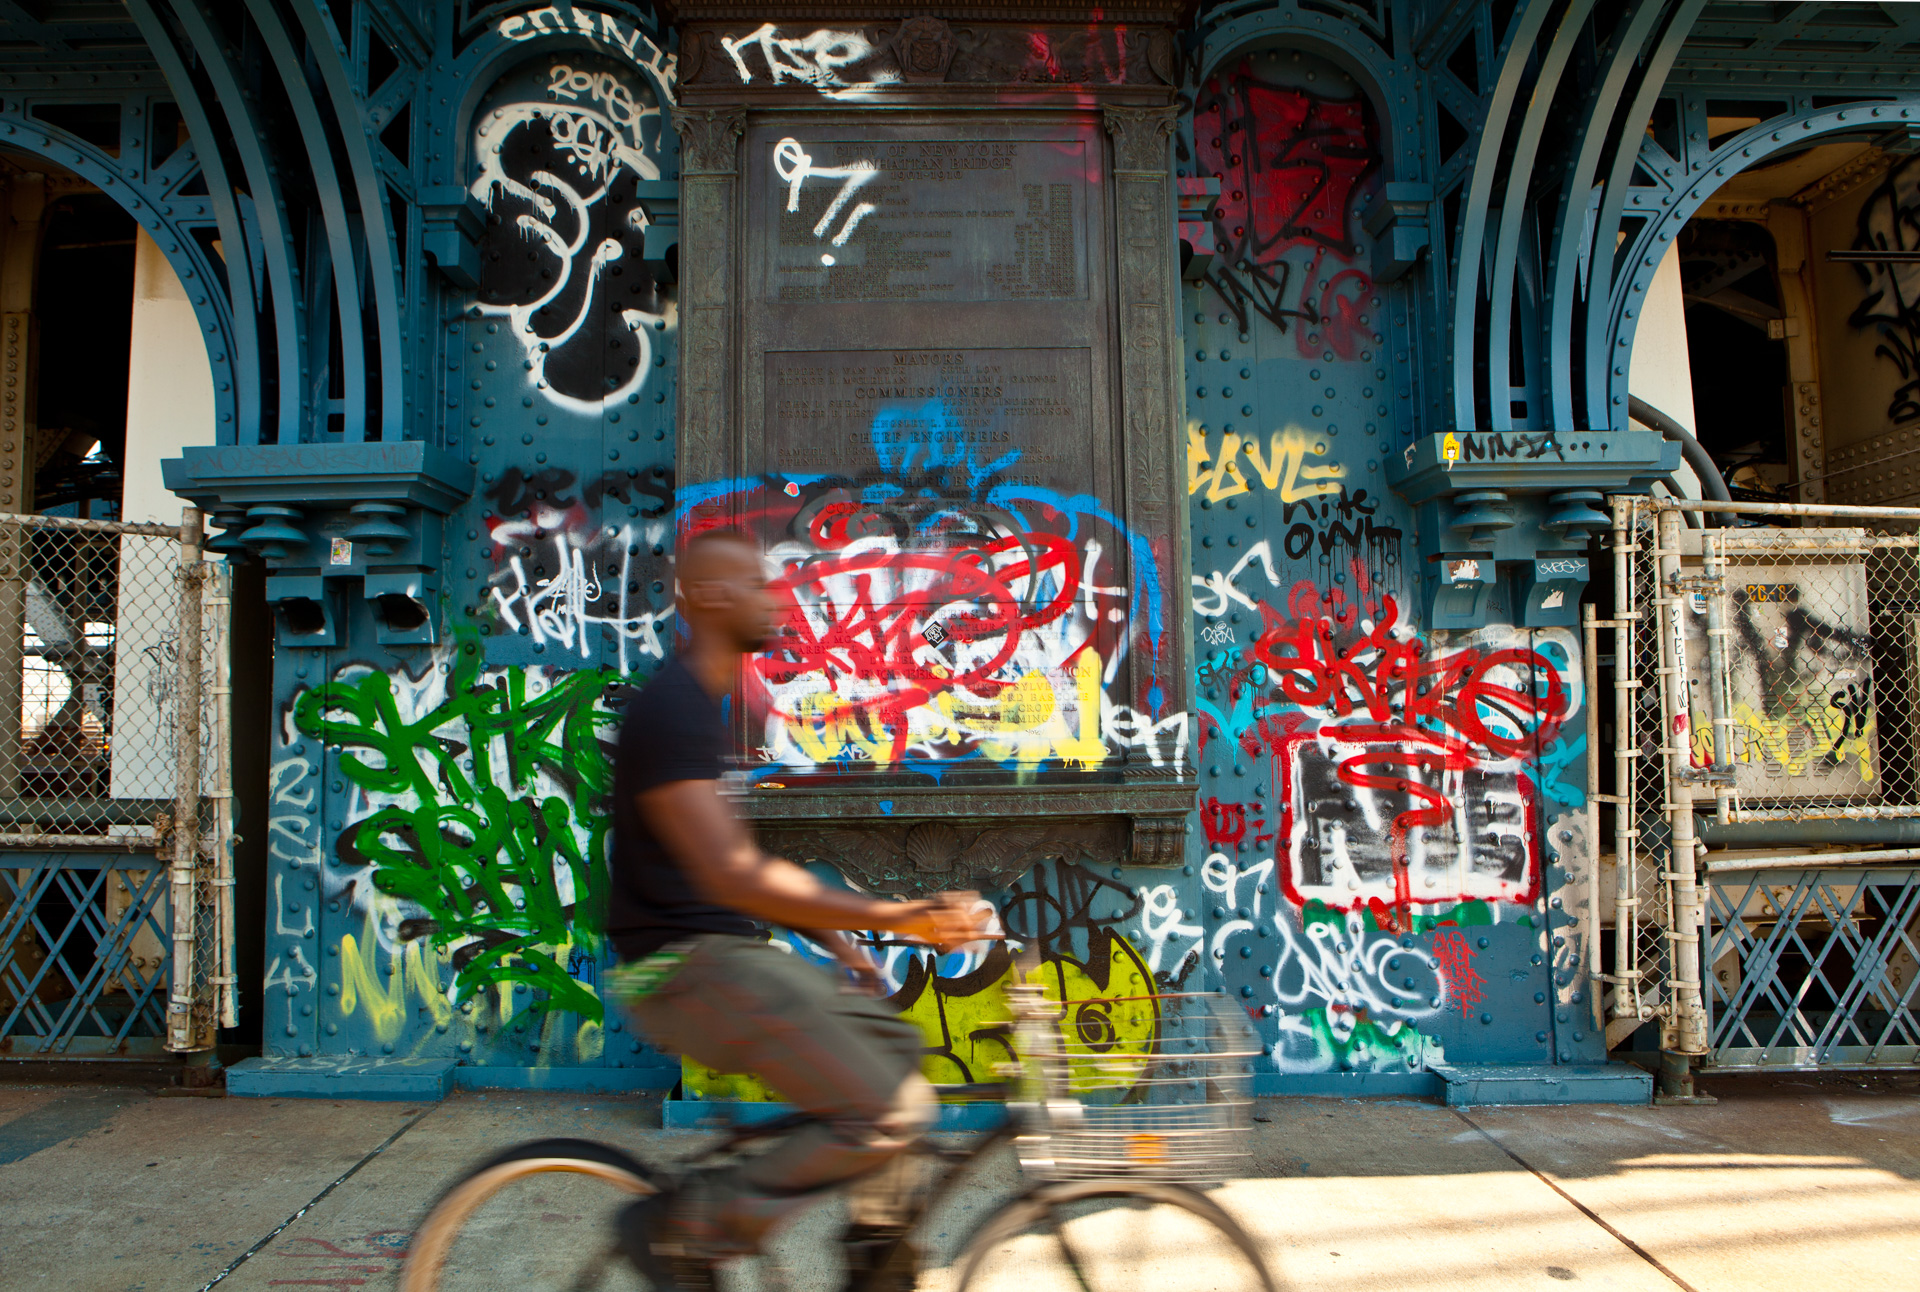 Bike, Colorful, Graffiti, manhattan, bridge, New, york, city, Street, Photos, black, male